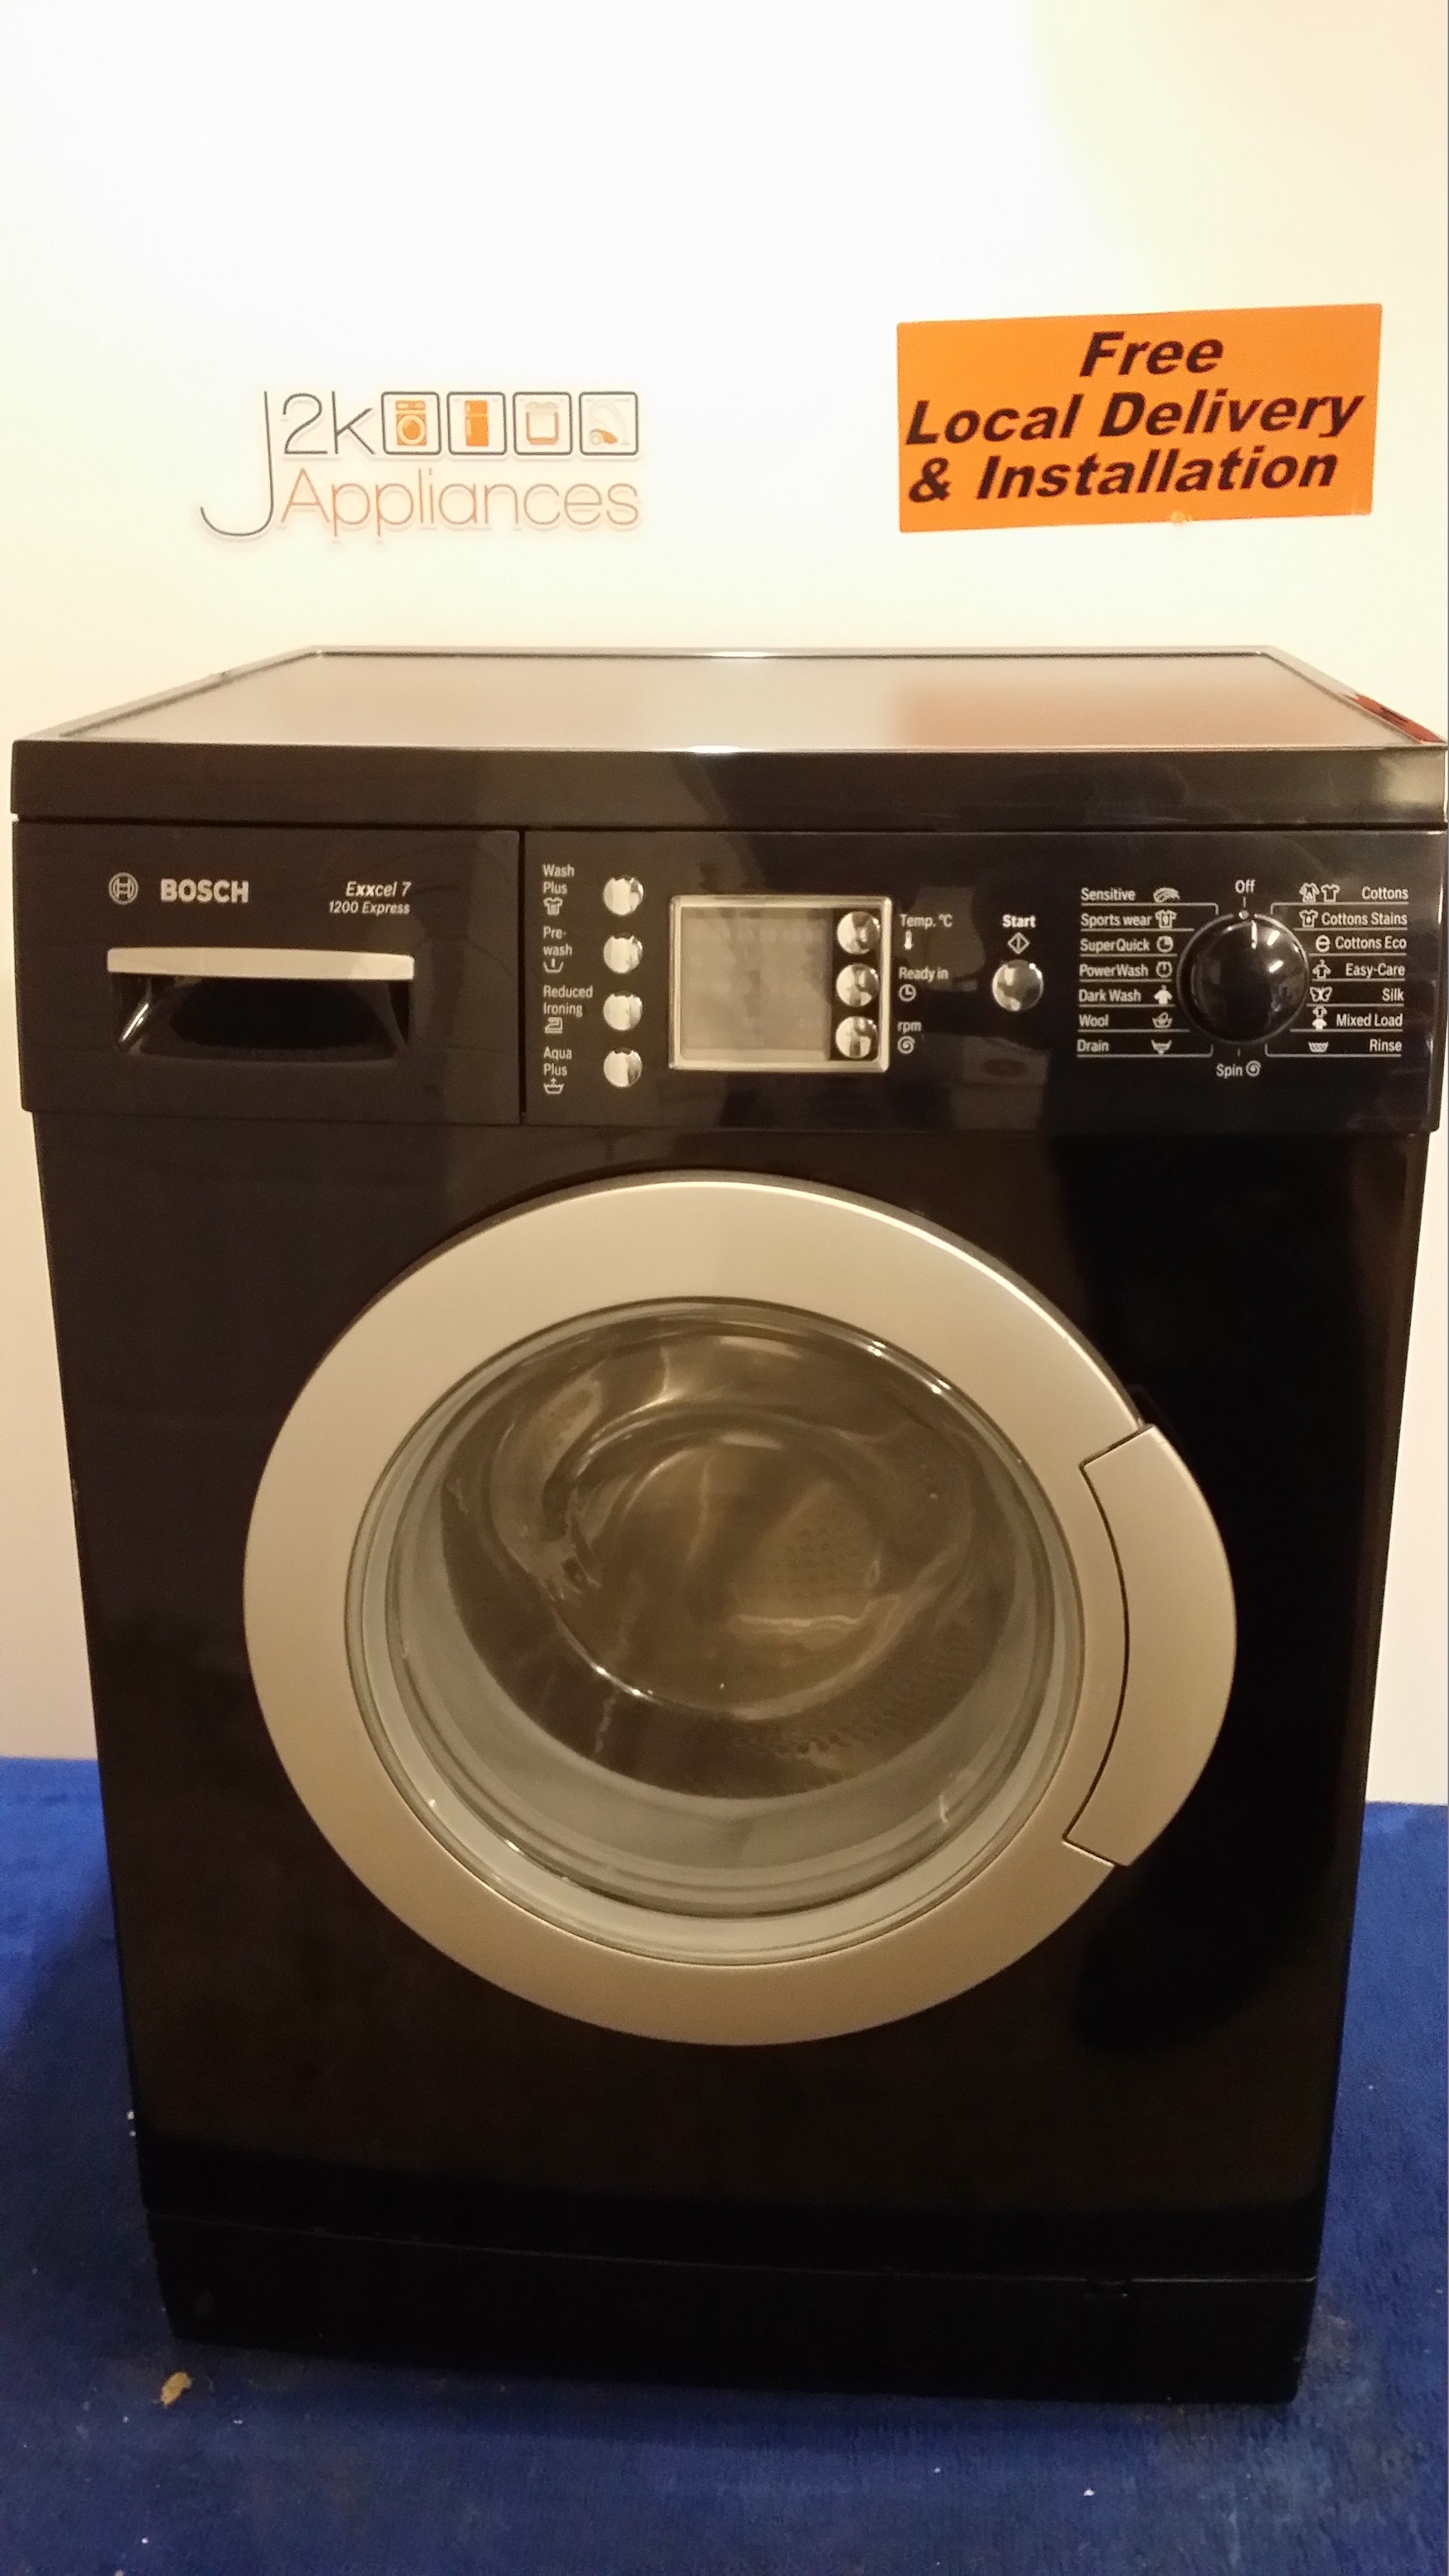 WM166- Black Bosch Excell 7kg 1200 Spin Washing Machine, Model – WAE2446